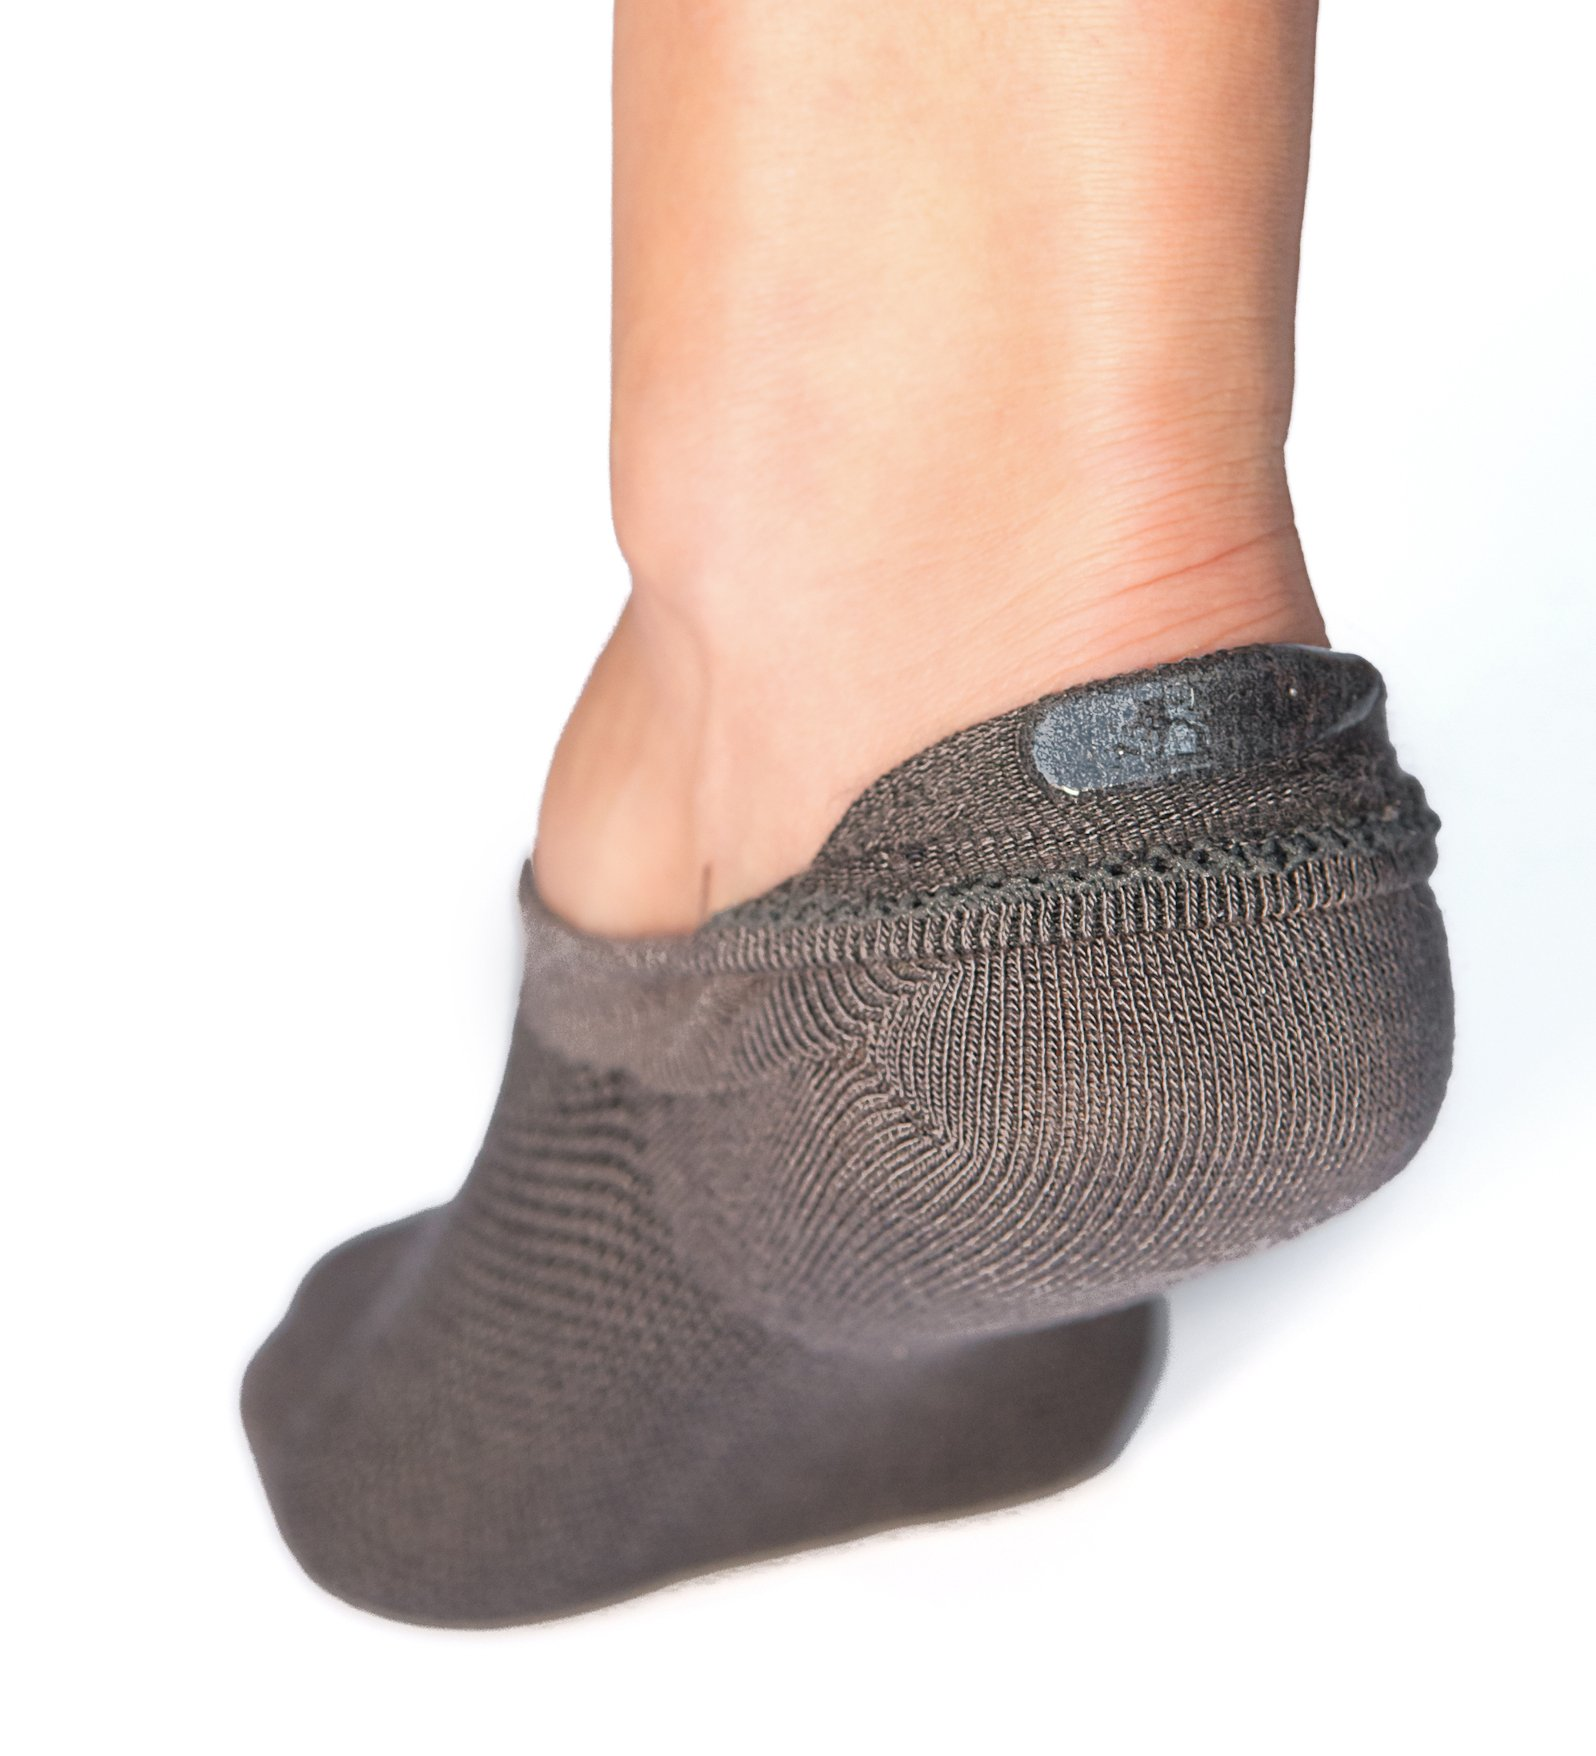 Bam&bü Women's Premium Bamboo No Show Casual Socks - 3 or 4 pair pack - Non-Slip by bam & bü (Image #6)